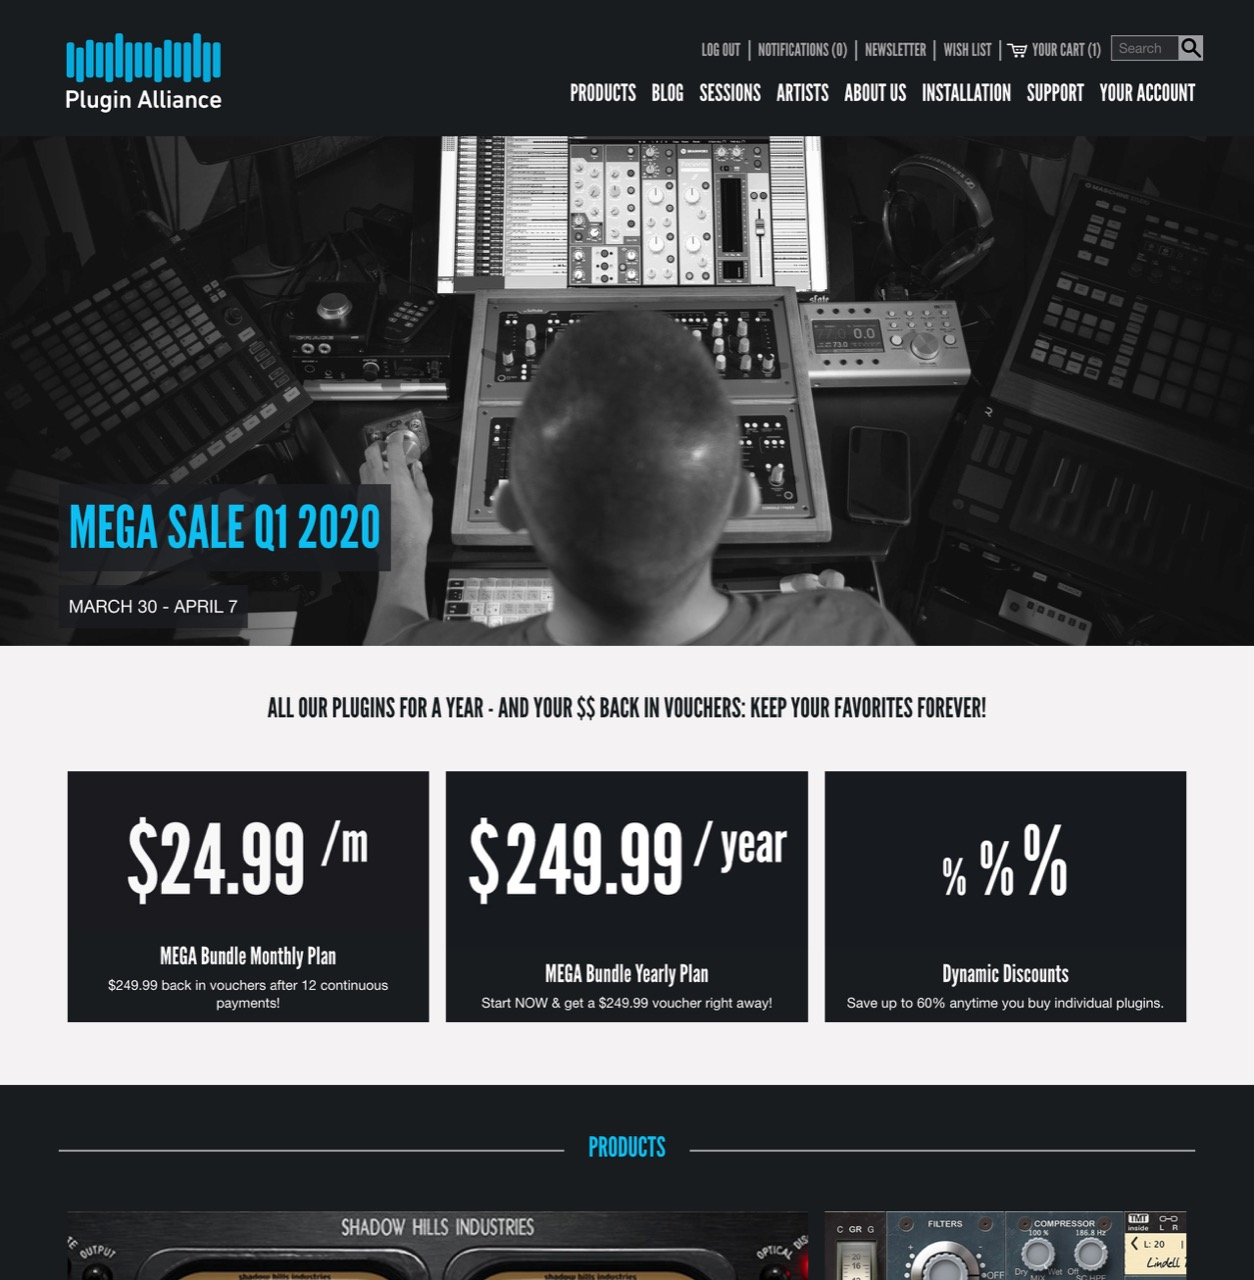 Sign up with us and receive 6 FREE plugins! - Plugin Alliance